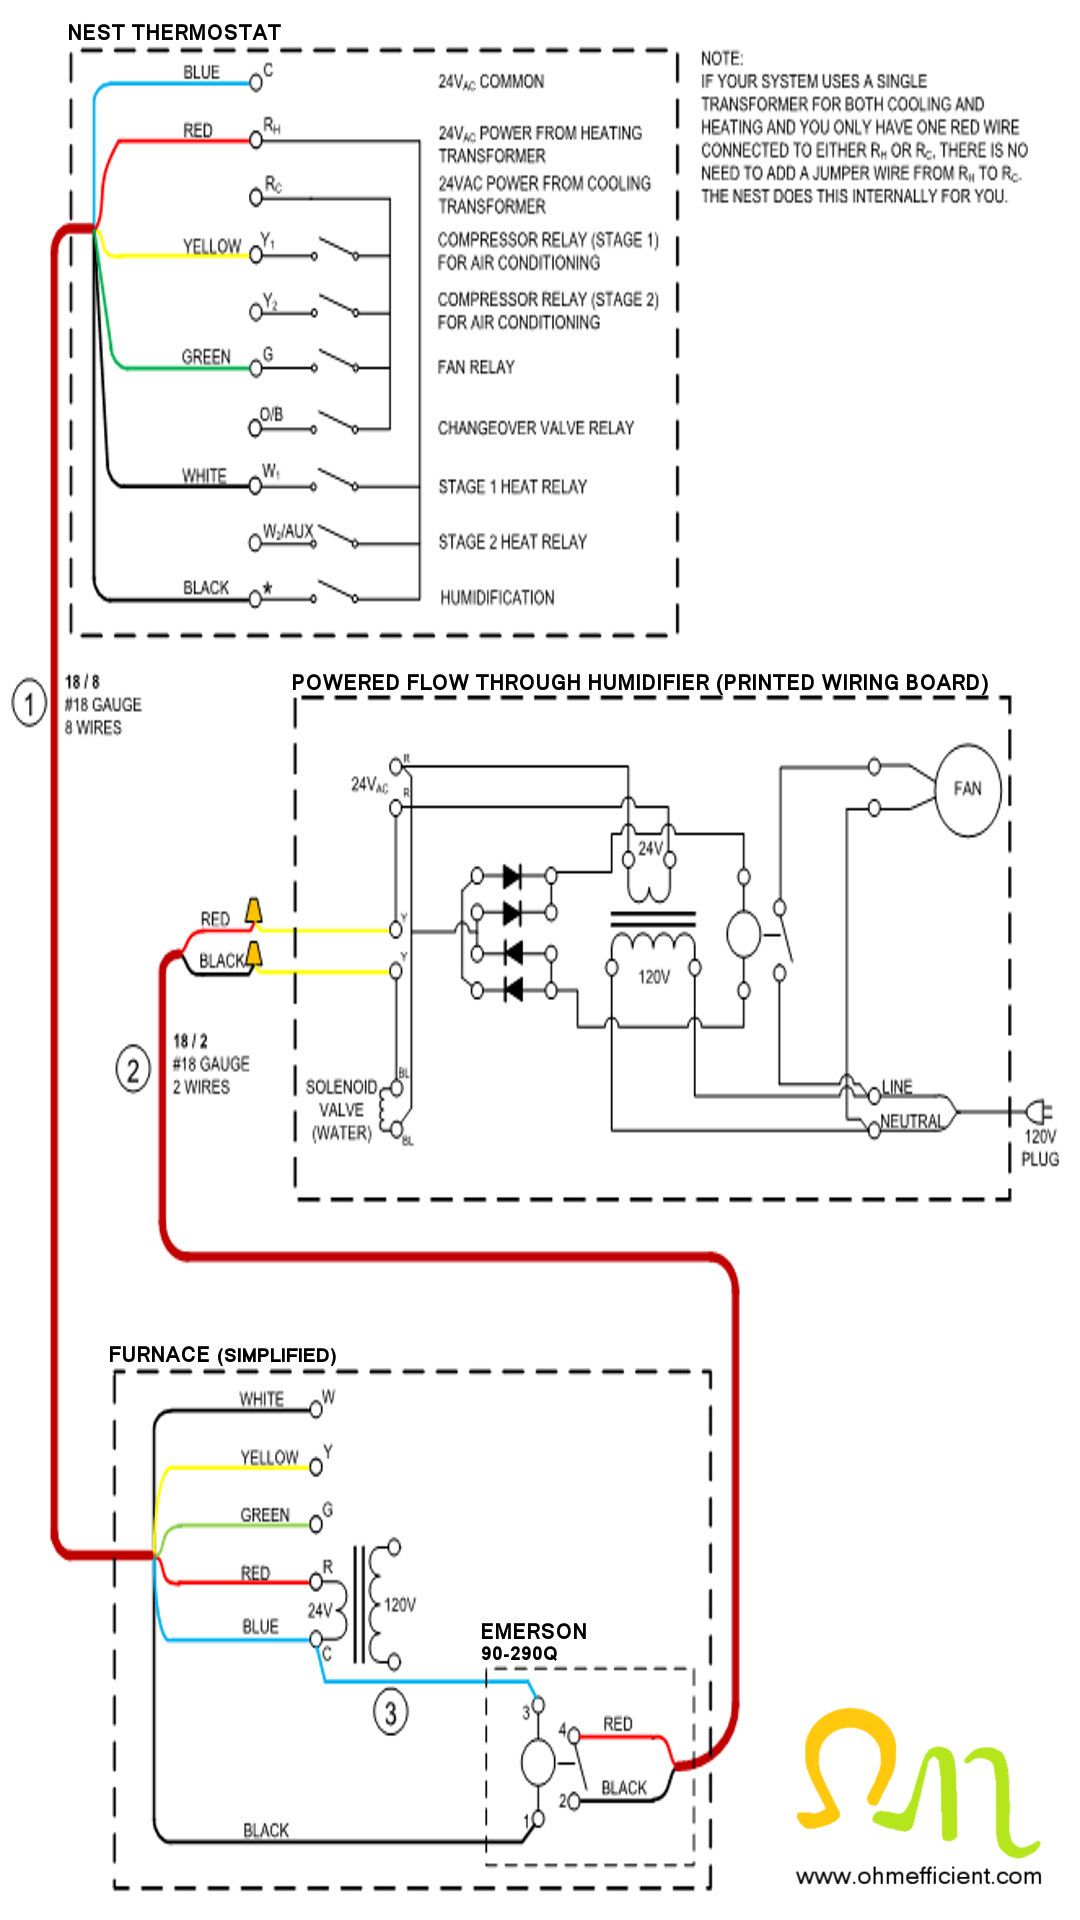 How To Connect & Setup A Nest Thermostat To Function As A Humidistat - Nest Wiring Diagram 4 Wires Steam Heat